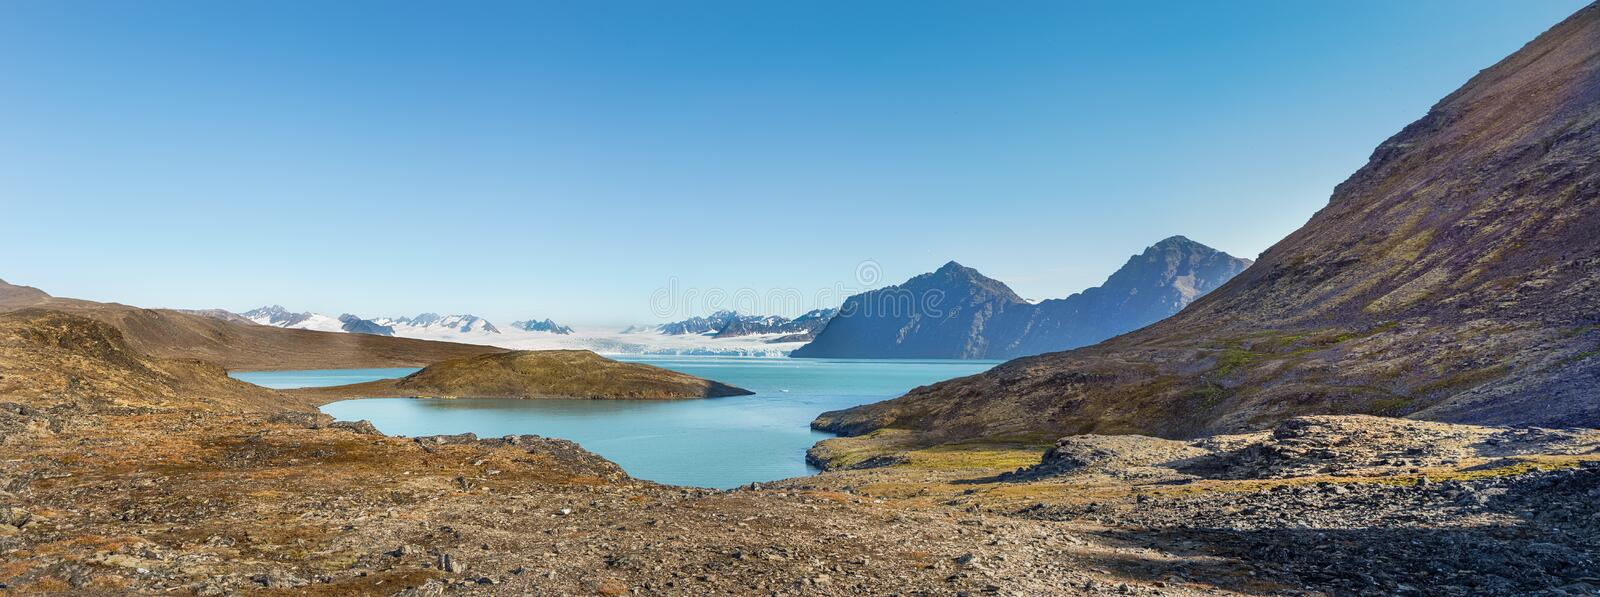 Signehamna bay, Nordvest-Spitsbergen National Park, Svalbard, Norway. View of the Signehamna, a natural bay and harbor in Albert I Land at Spitsbergen, Svalbard royalty free stock photos